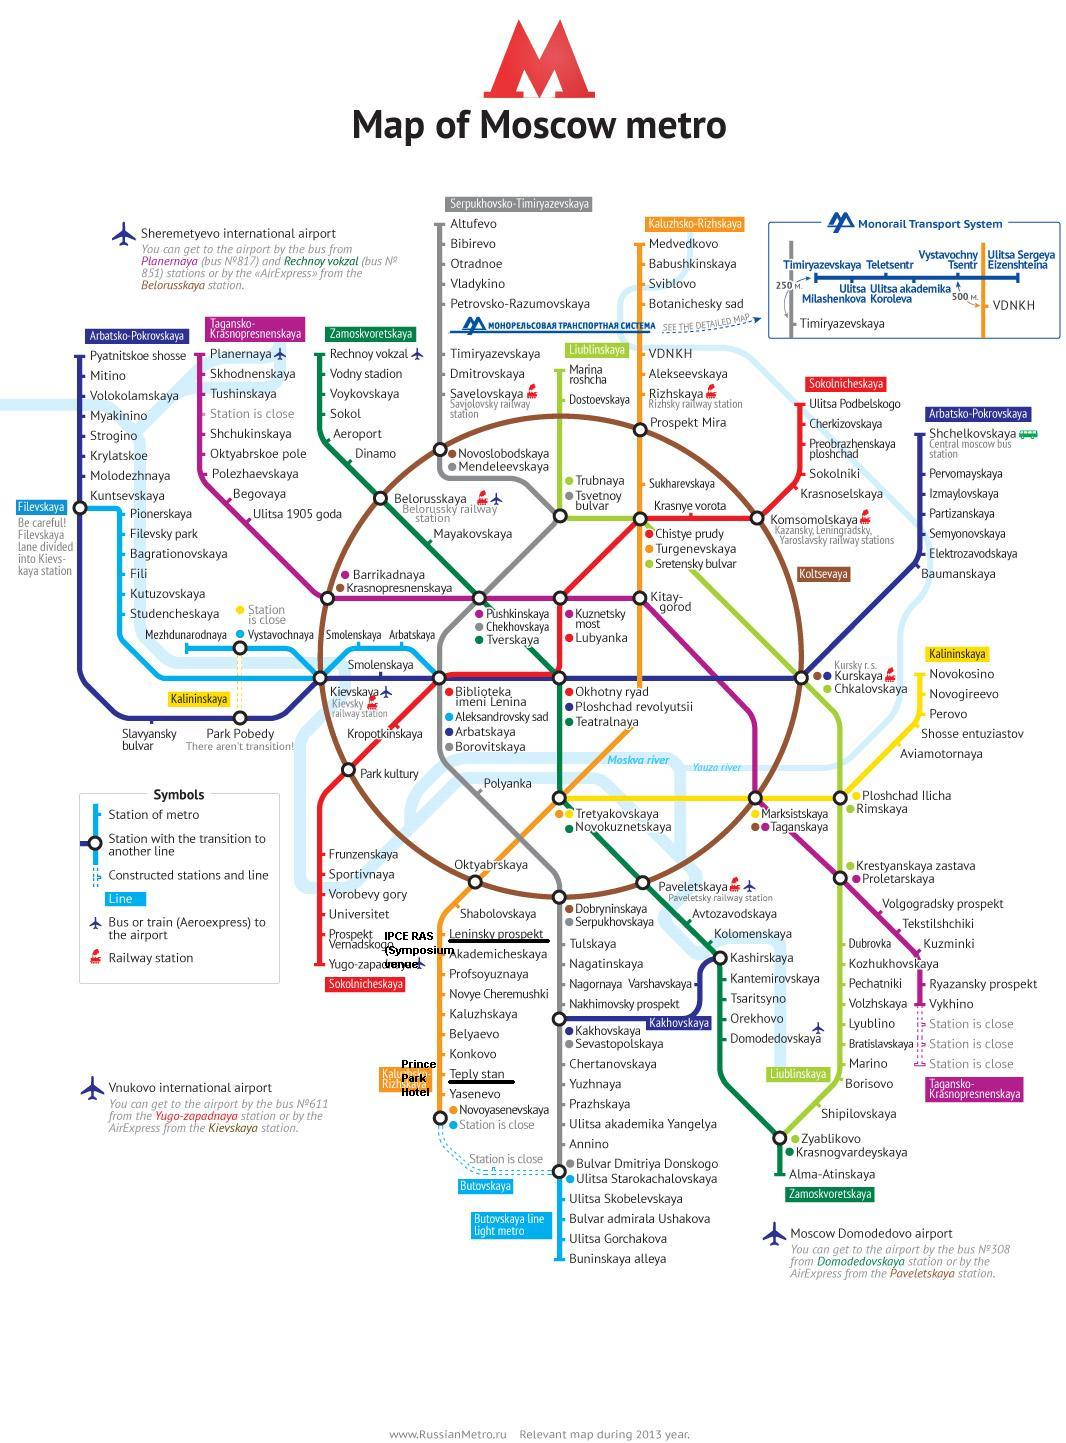 The Moscow metro map